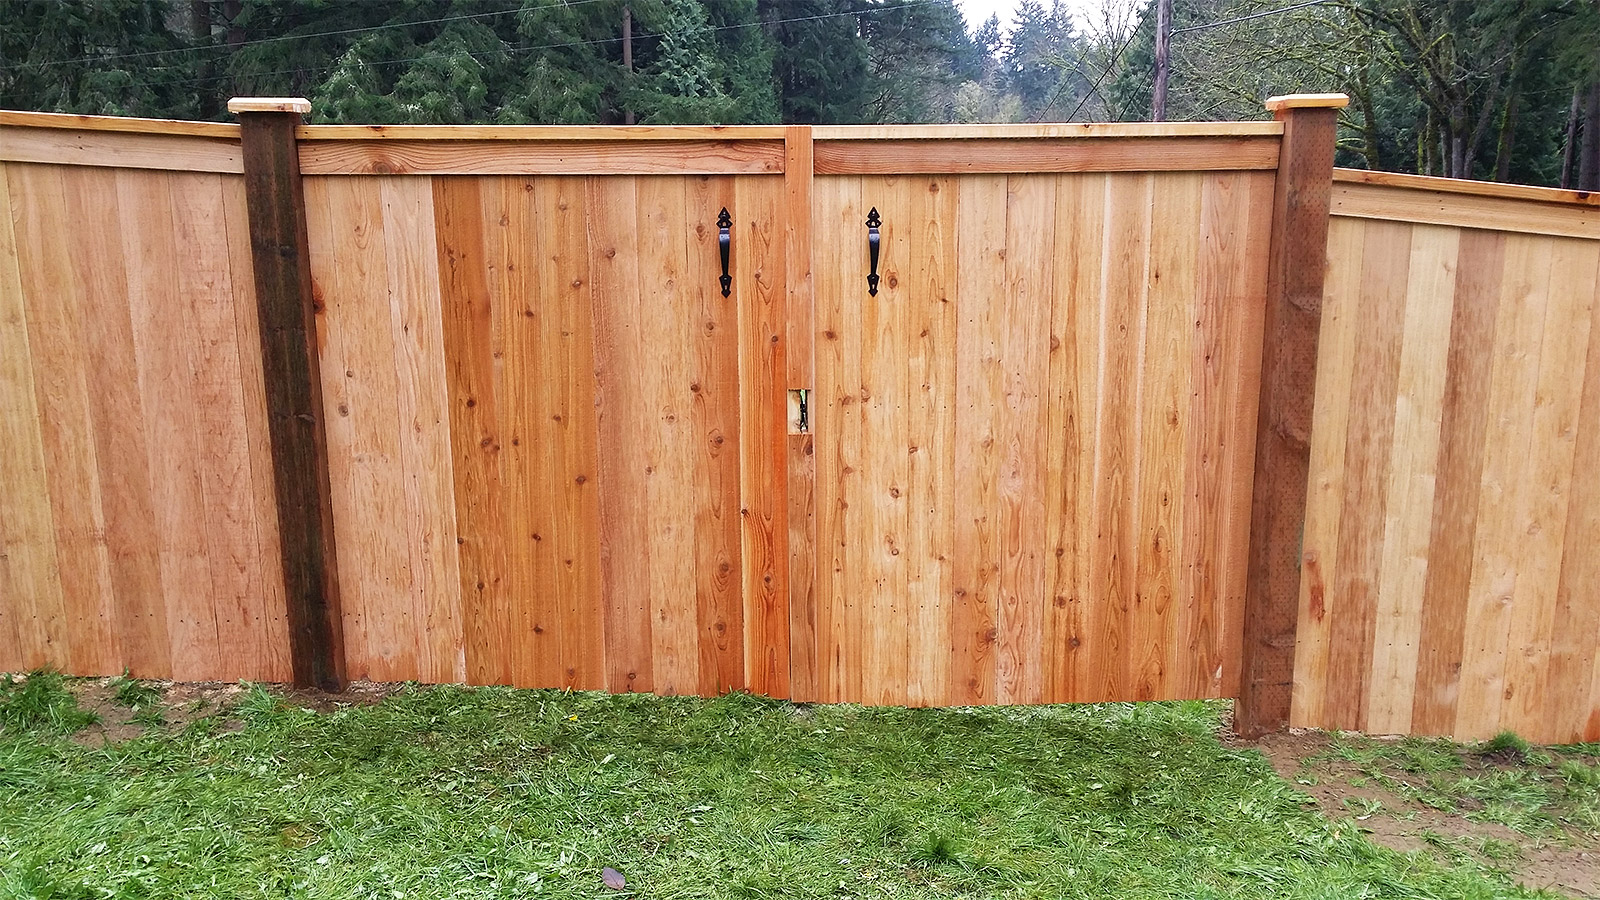 12ft Wide Double Swing Gate (Front View)